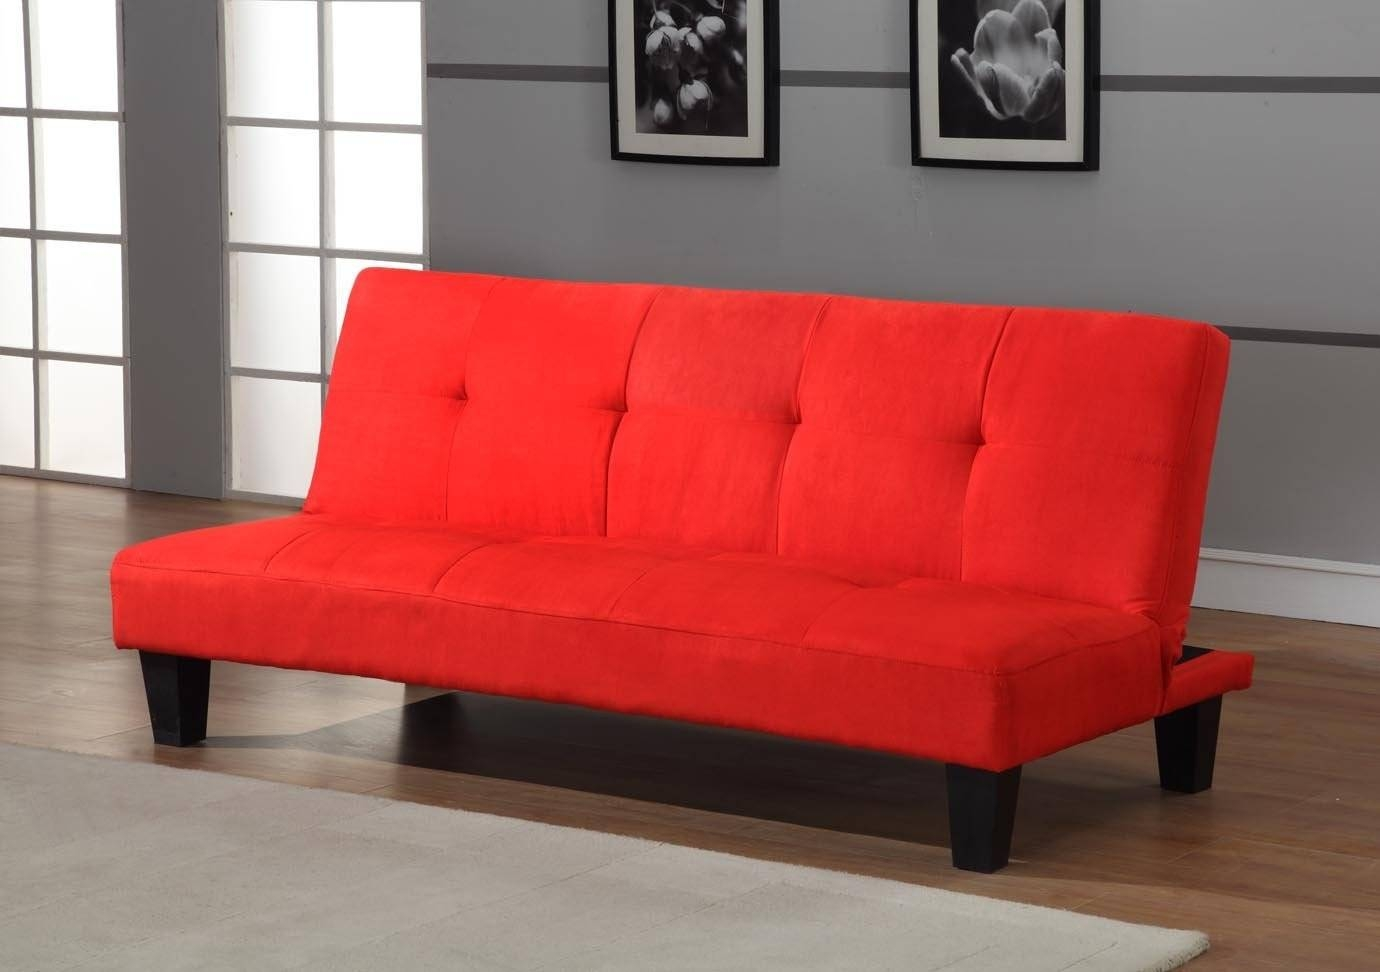 Furniture: Grey Kebo Futon Sofa Bed With Arms For Living Room in Kebo Futon Sofas (Image 4 of 15)